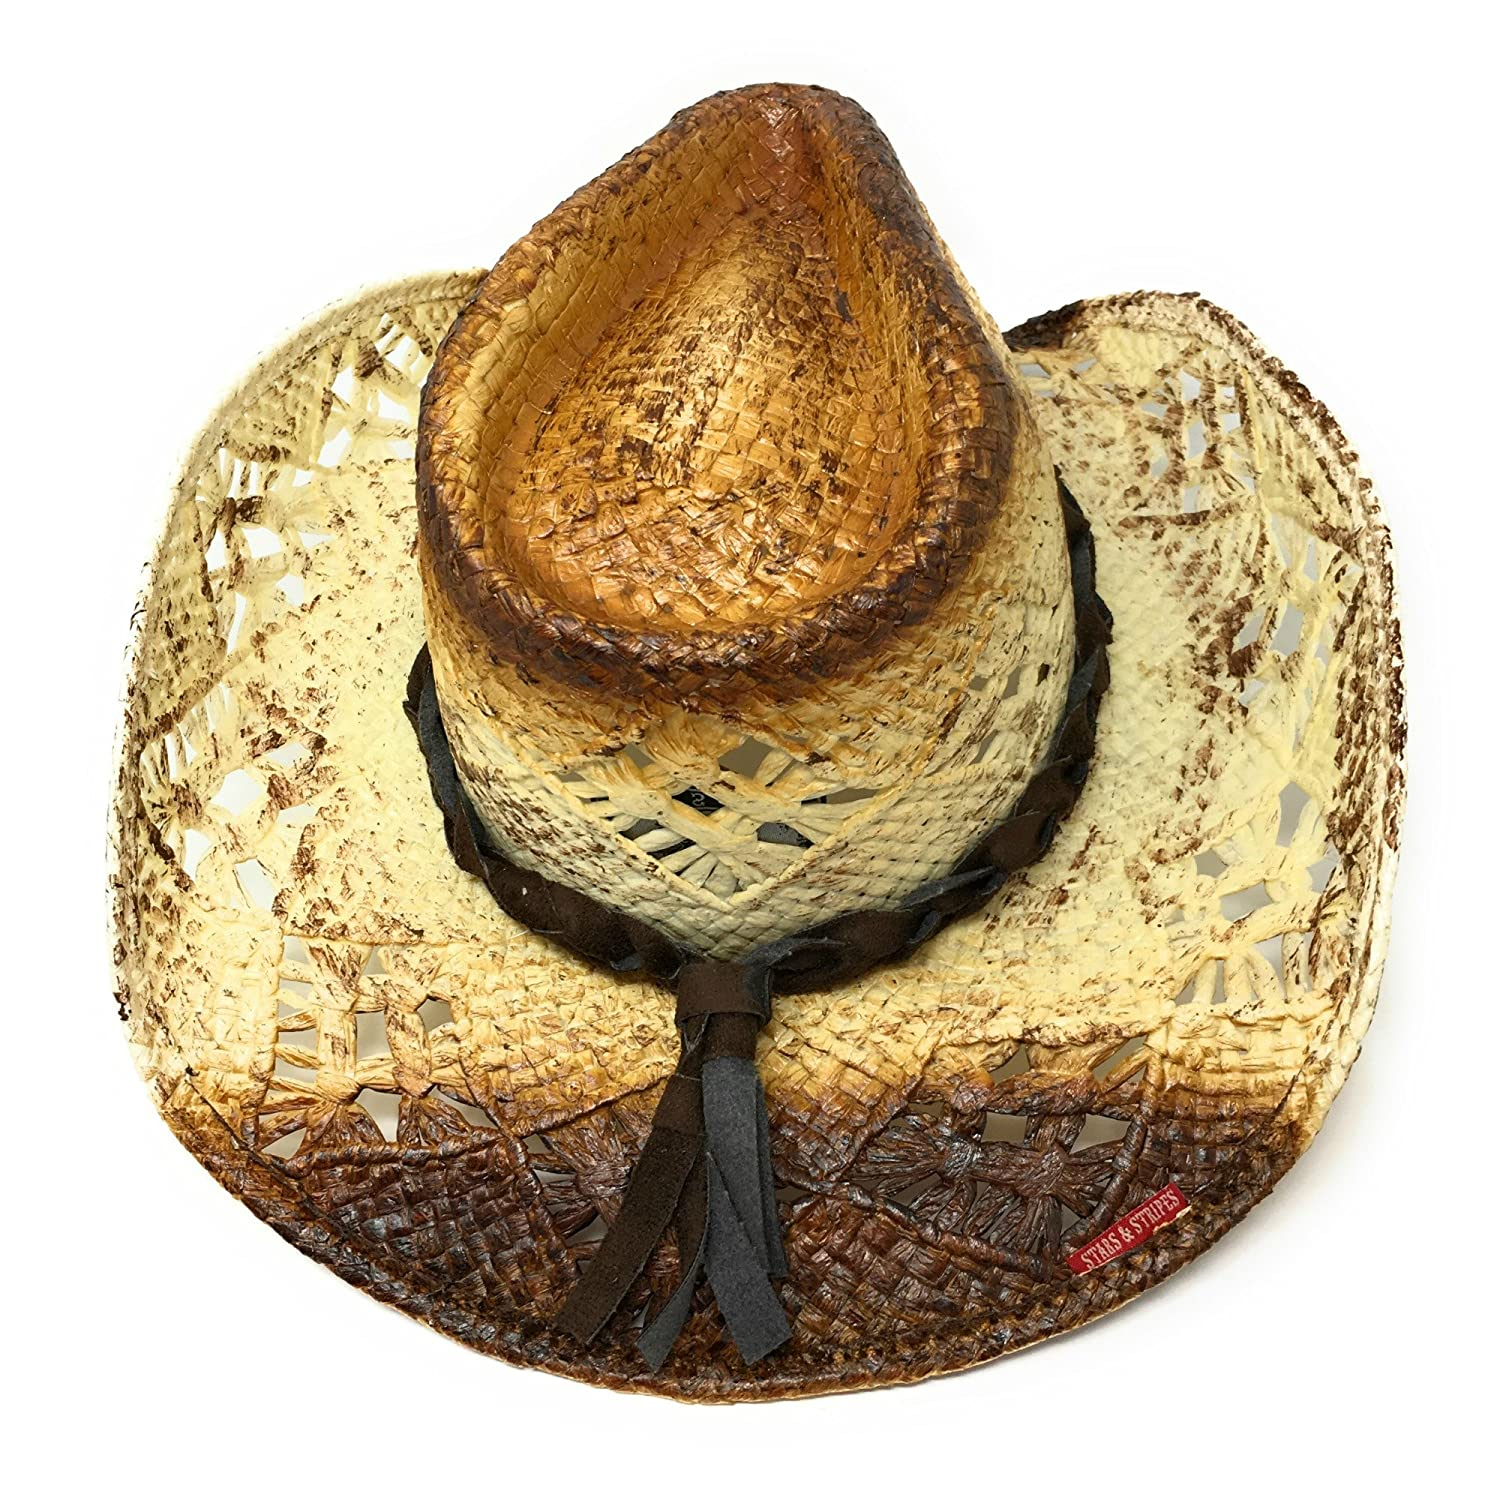 fd6cda9dac8 STARS   STRIPES Brown Cream Straw Cowboy Hat with Leather Band and Metal  Concho  Amazon.co.uk  Clothing